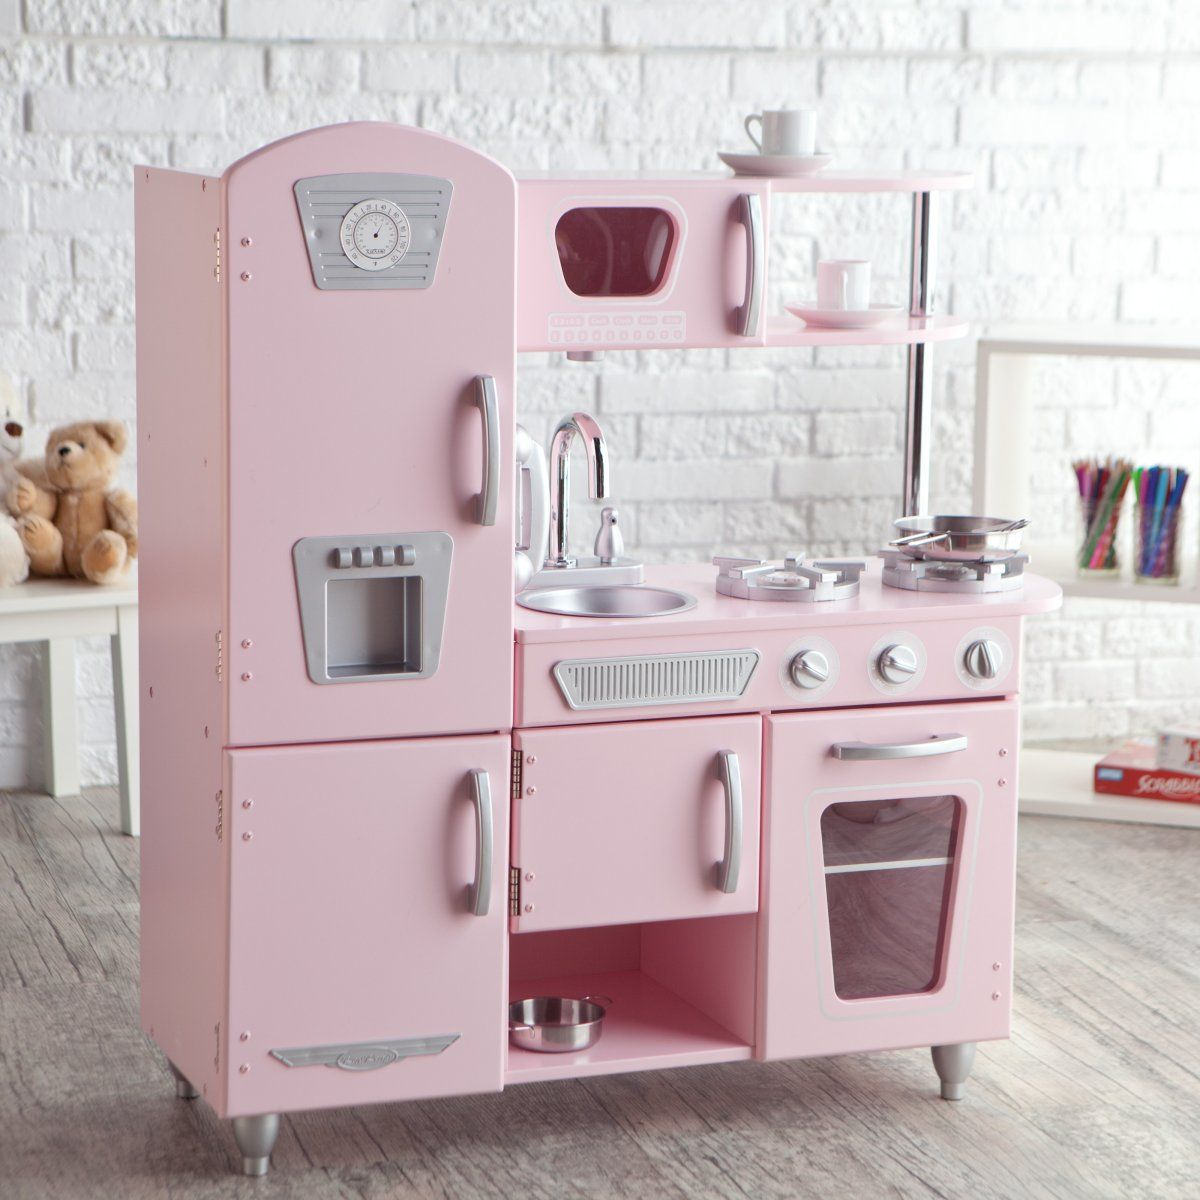 I want this one for my little princess- KidKraft Pink Vintage Kitchen - Play Kitchens and Grills at Play Kitchens